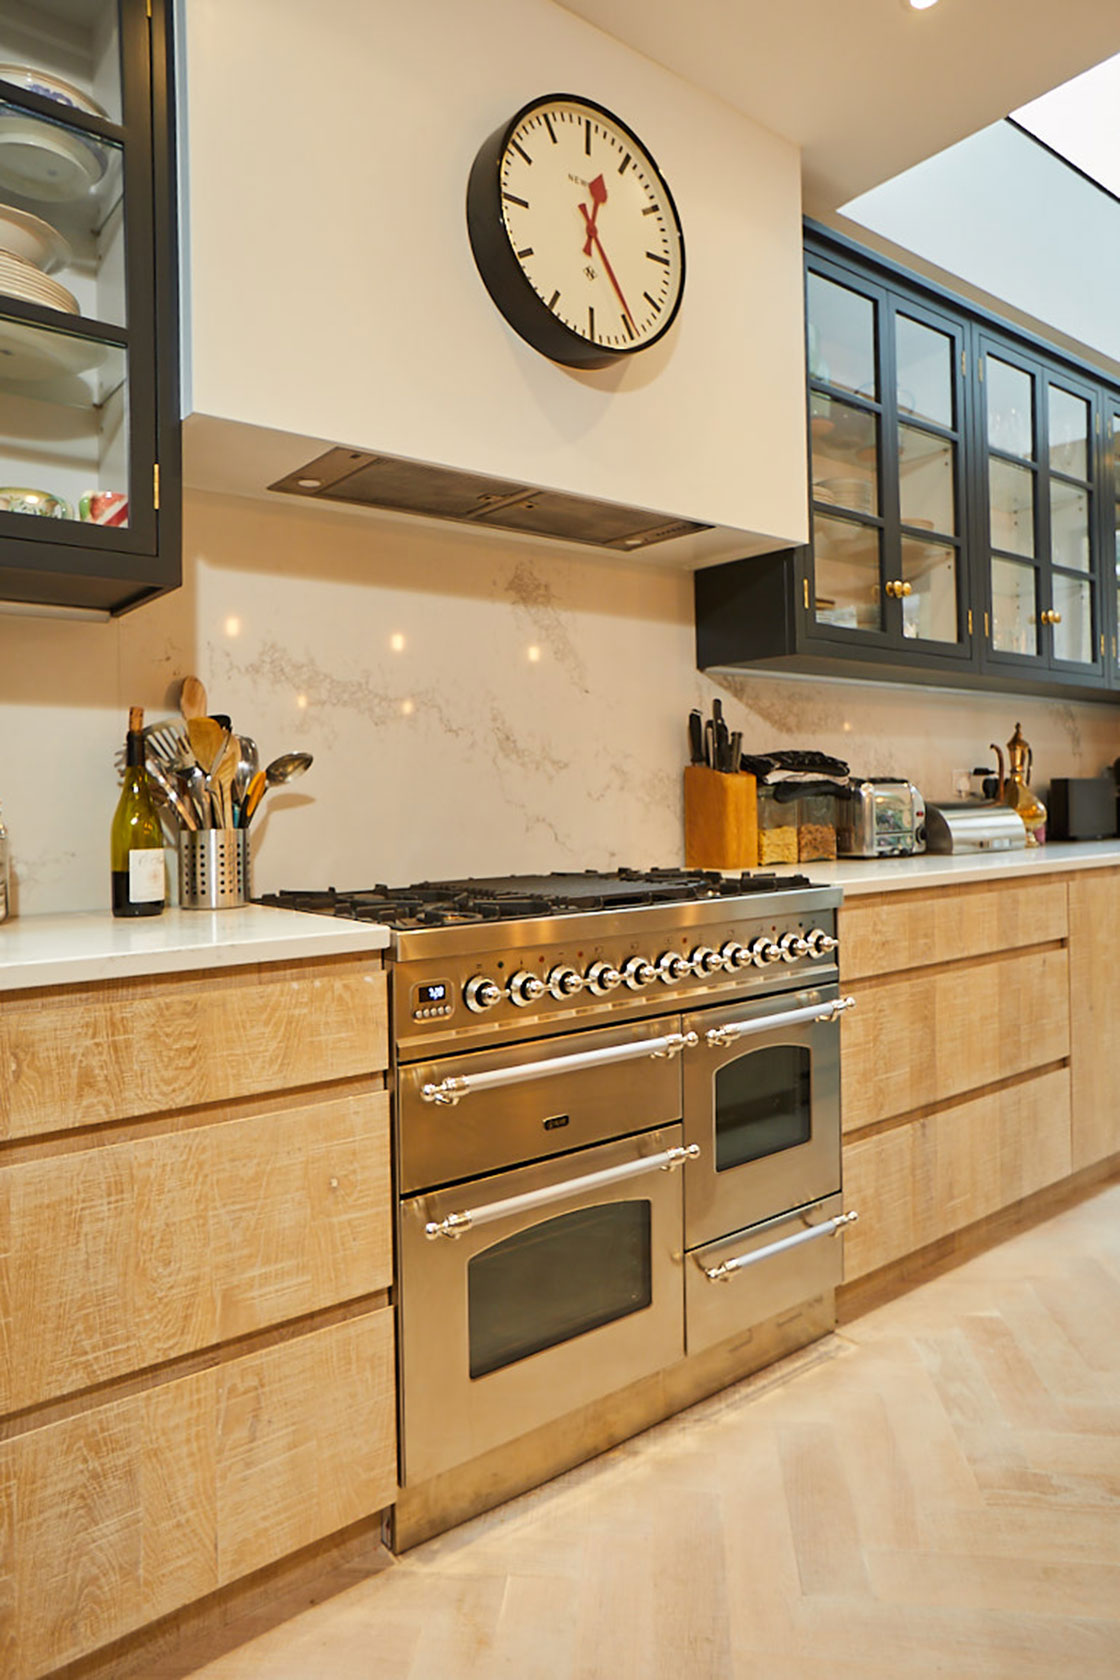 Stainless steel range cooker sits in between limed oak kitchen cabinets with floating minimal white canopy